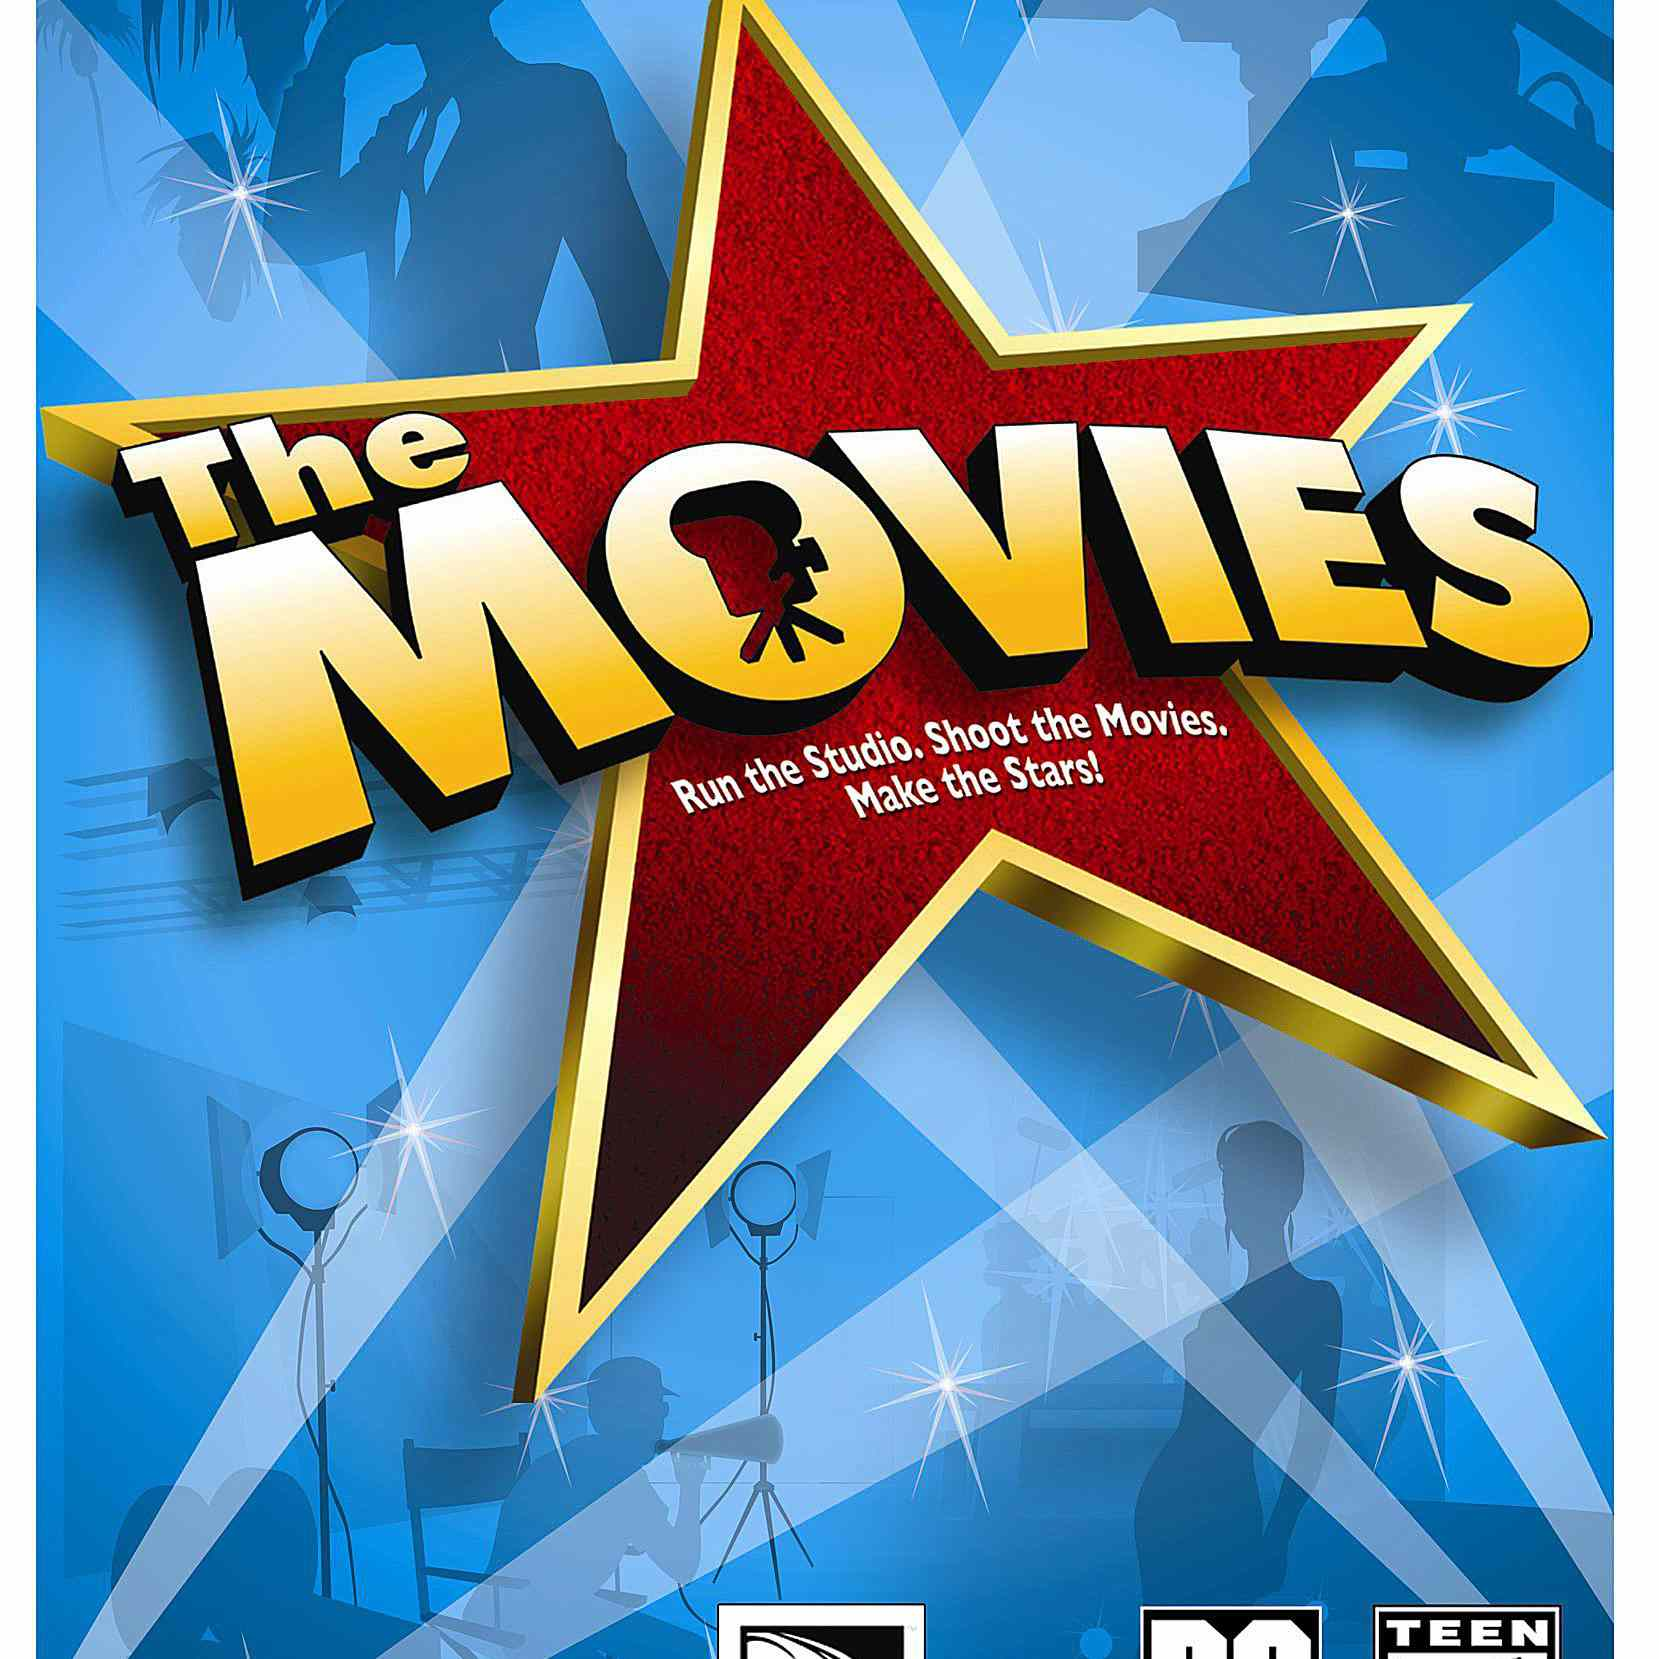 Screenshot of The Movies box cover.